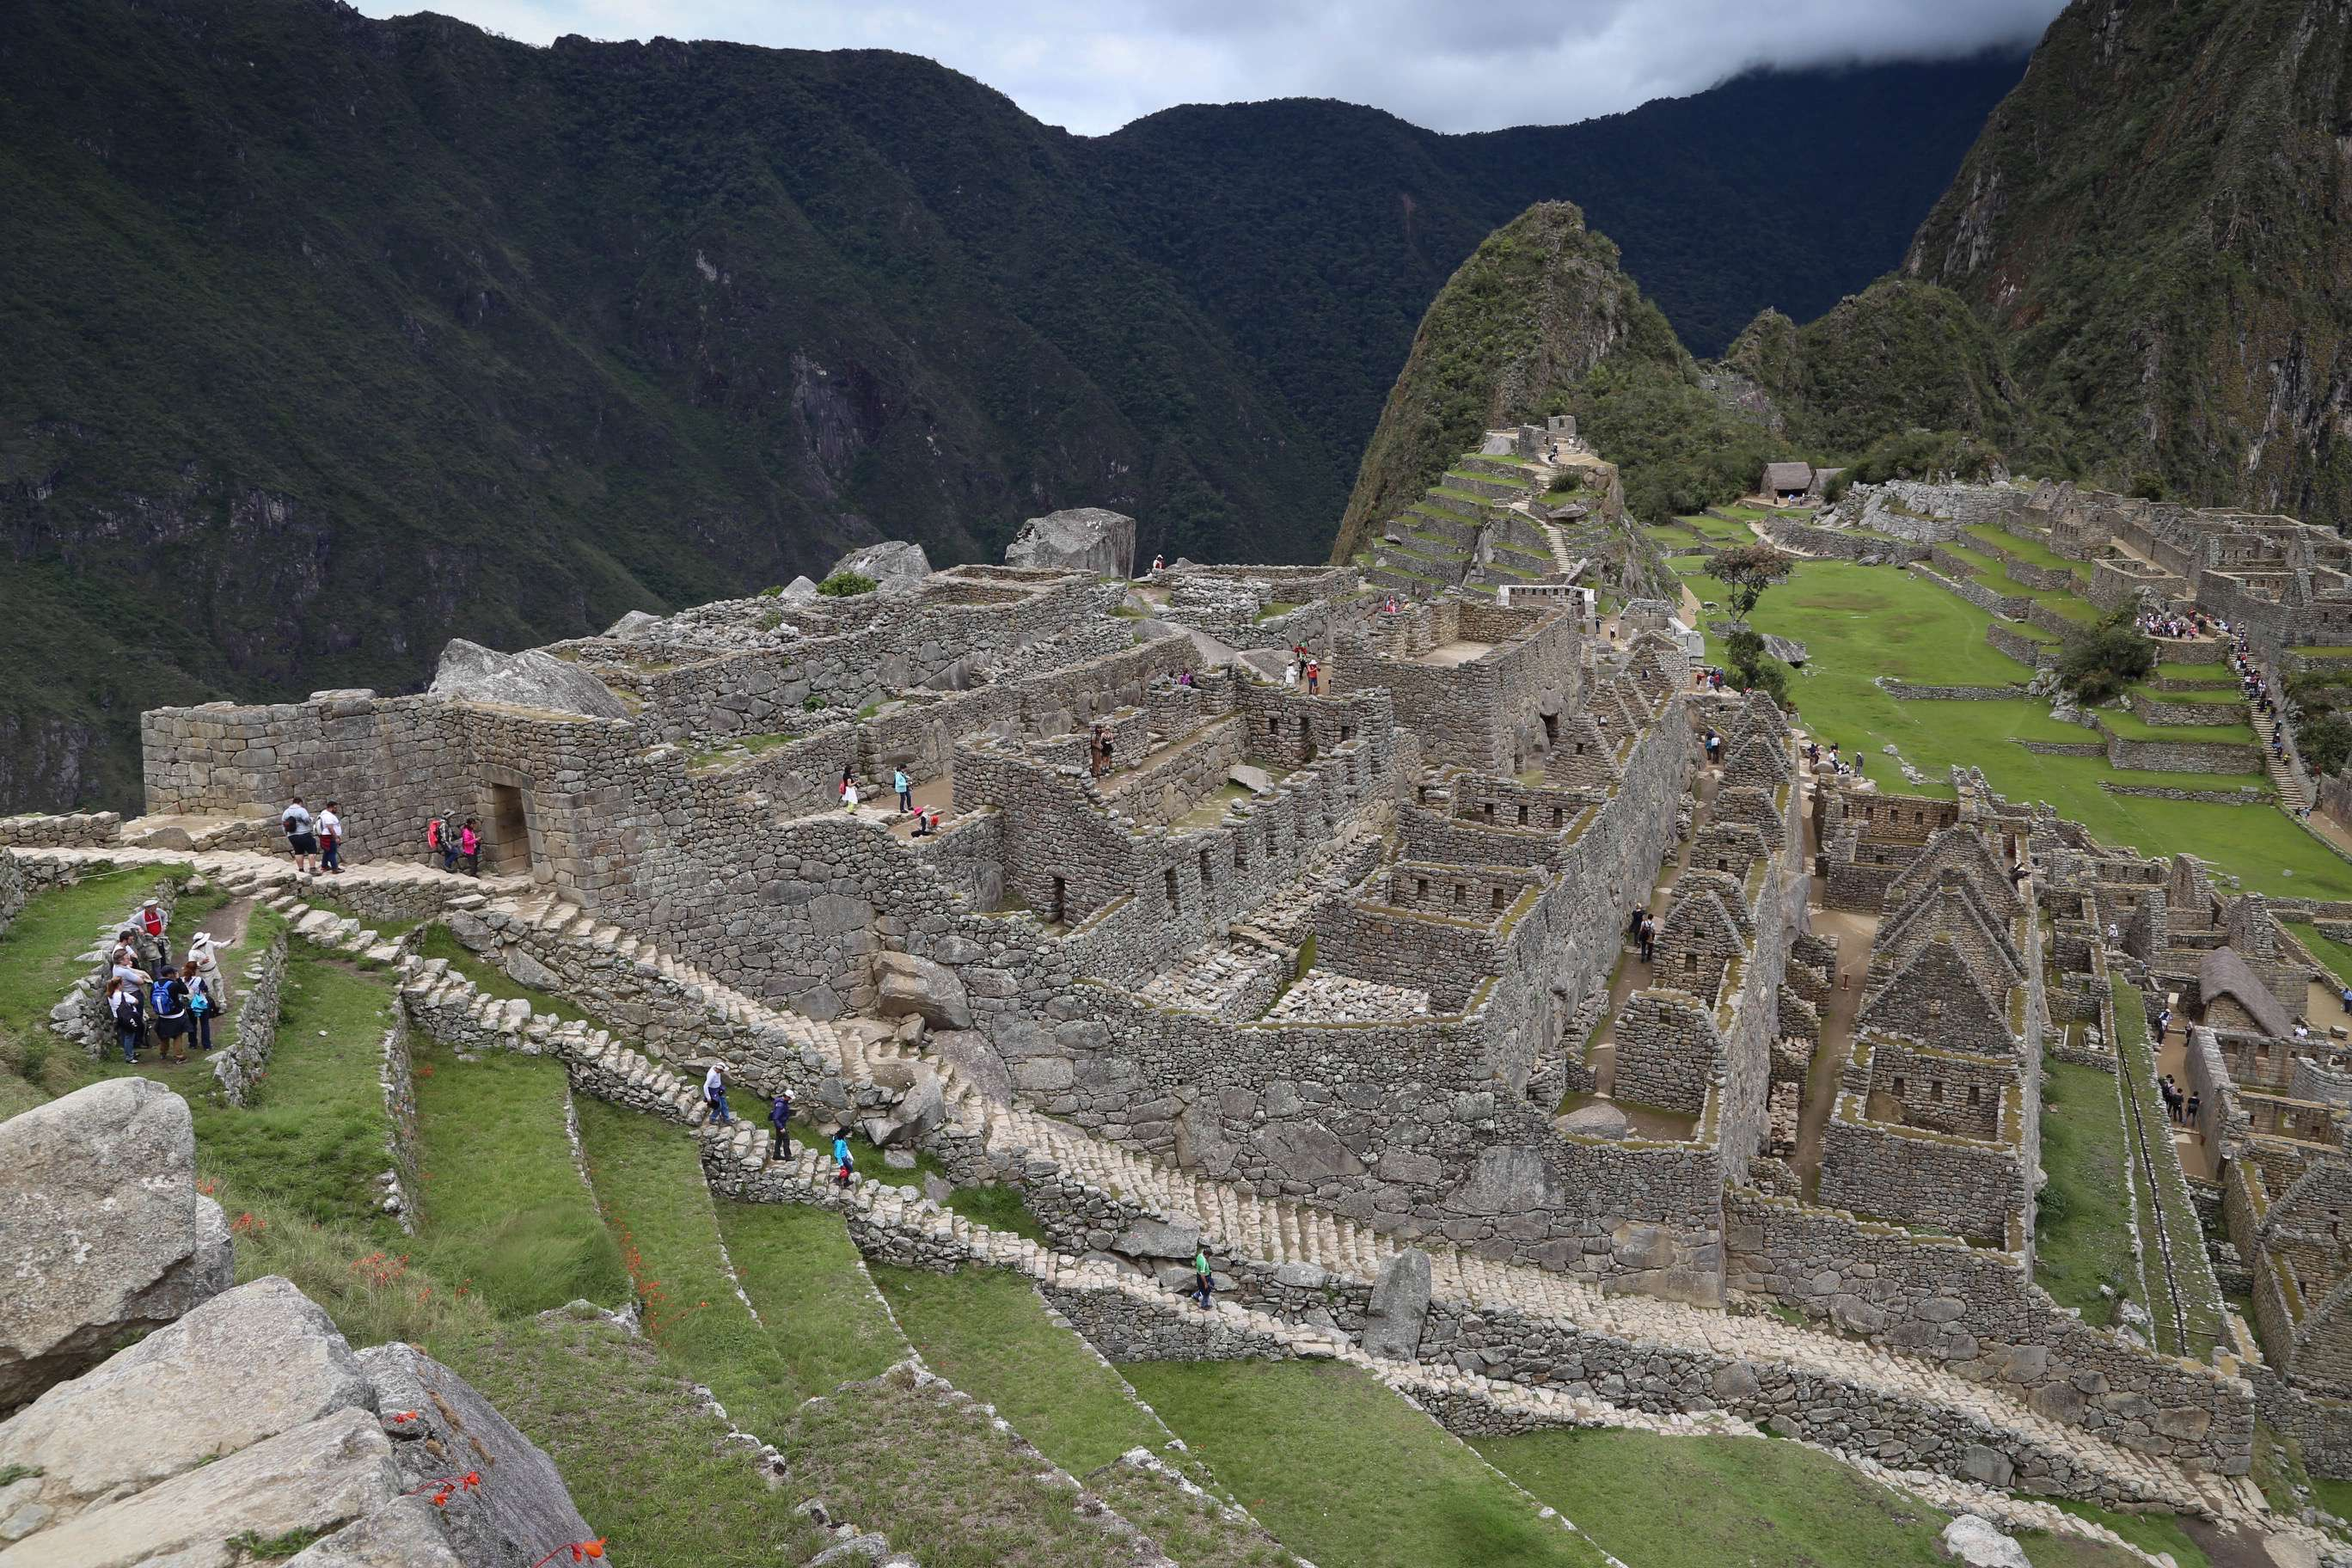 Machu Picchu is the crown jewel of the Inca Empire. Hidden away in the Andes Mountains it is the most popular visitor destination in Peru.